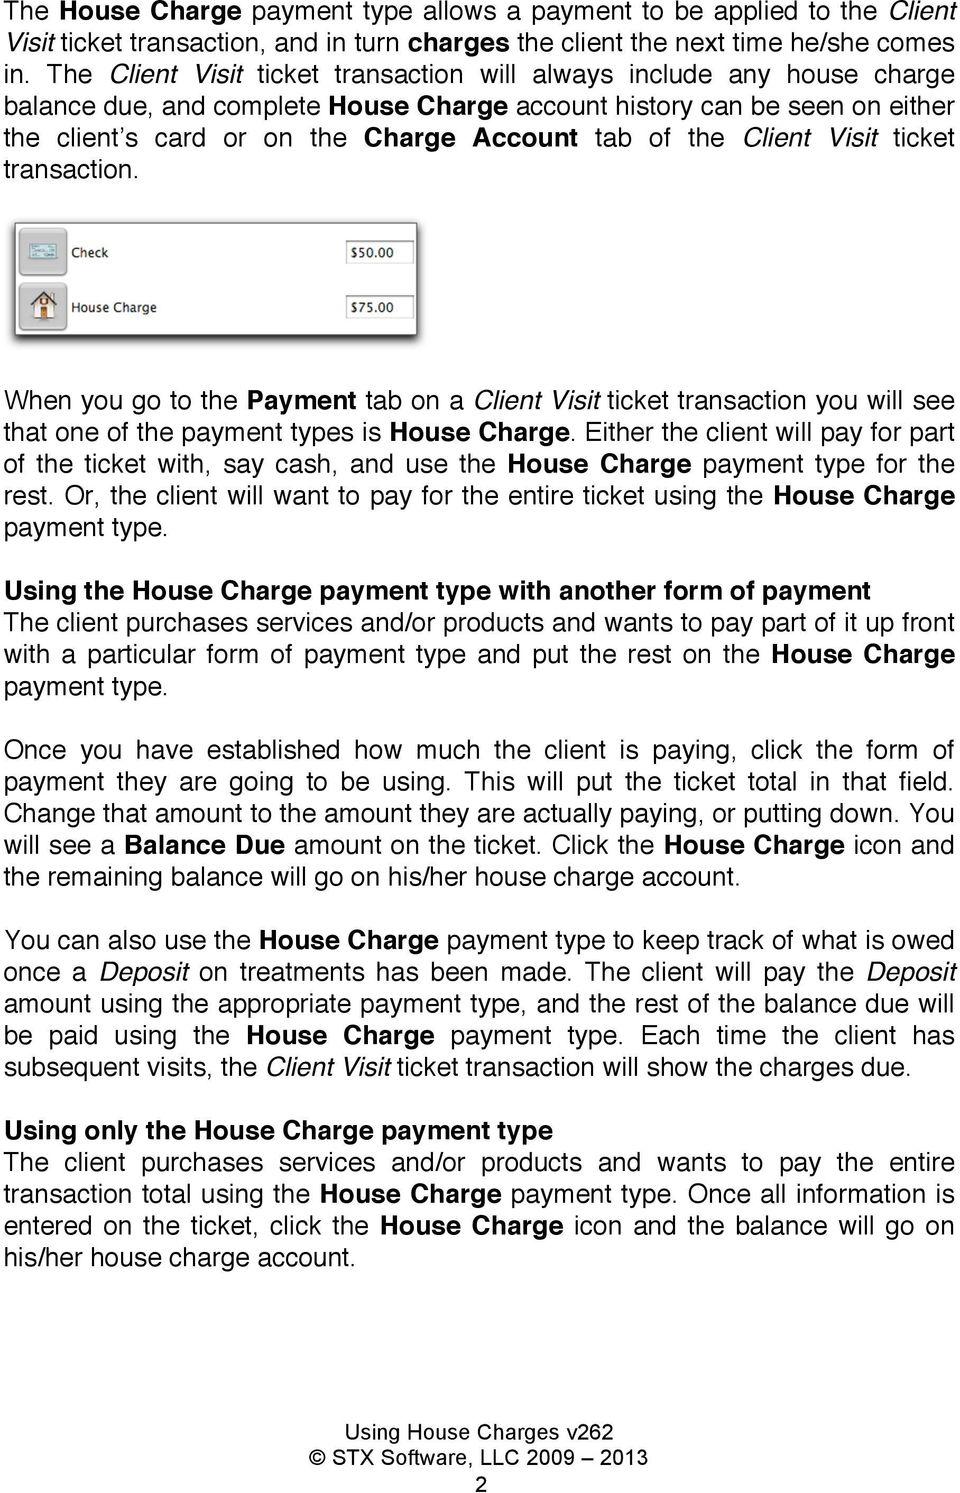 the Client Visit ticket transaction. When you go to the Payment tab on a Client Visit ticket transaction you will see that one of the payment types is House Charge.